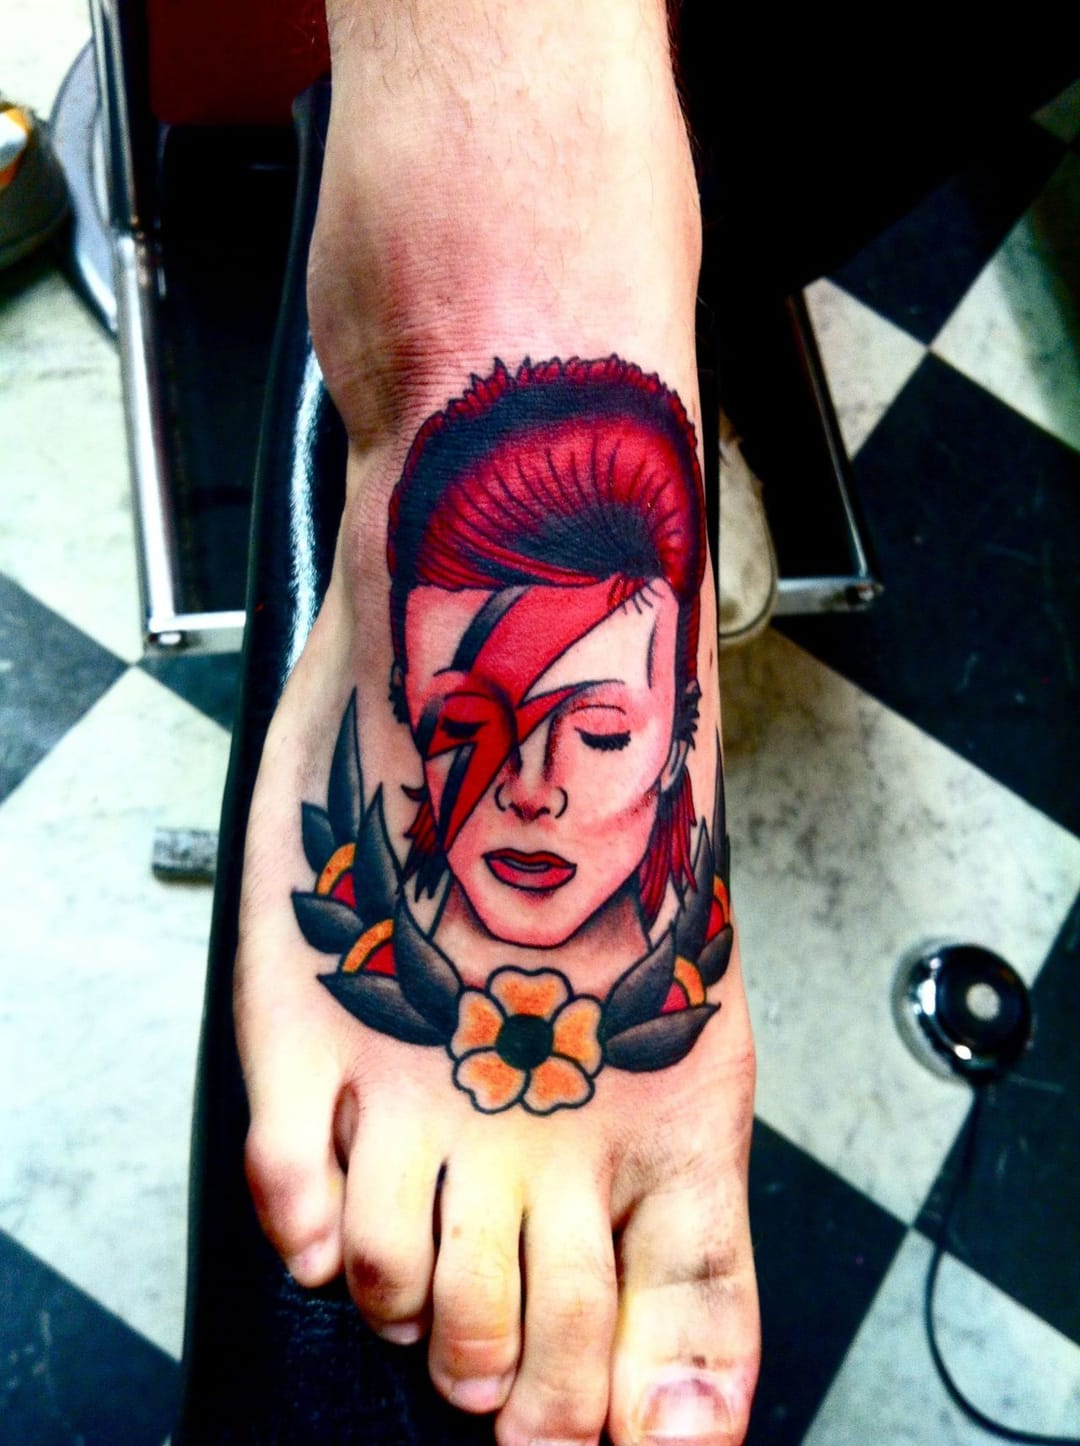 Another colorful Ziggy Stardust piece, artist unknown